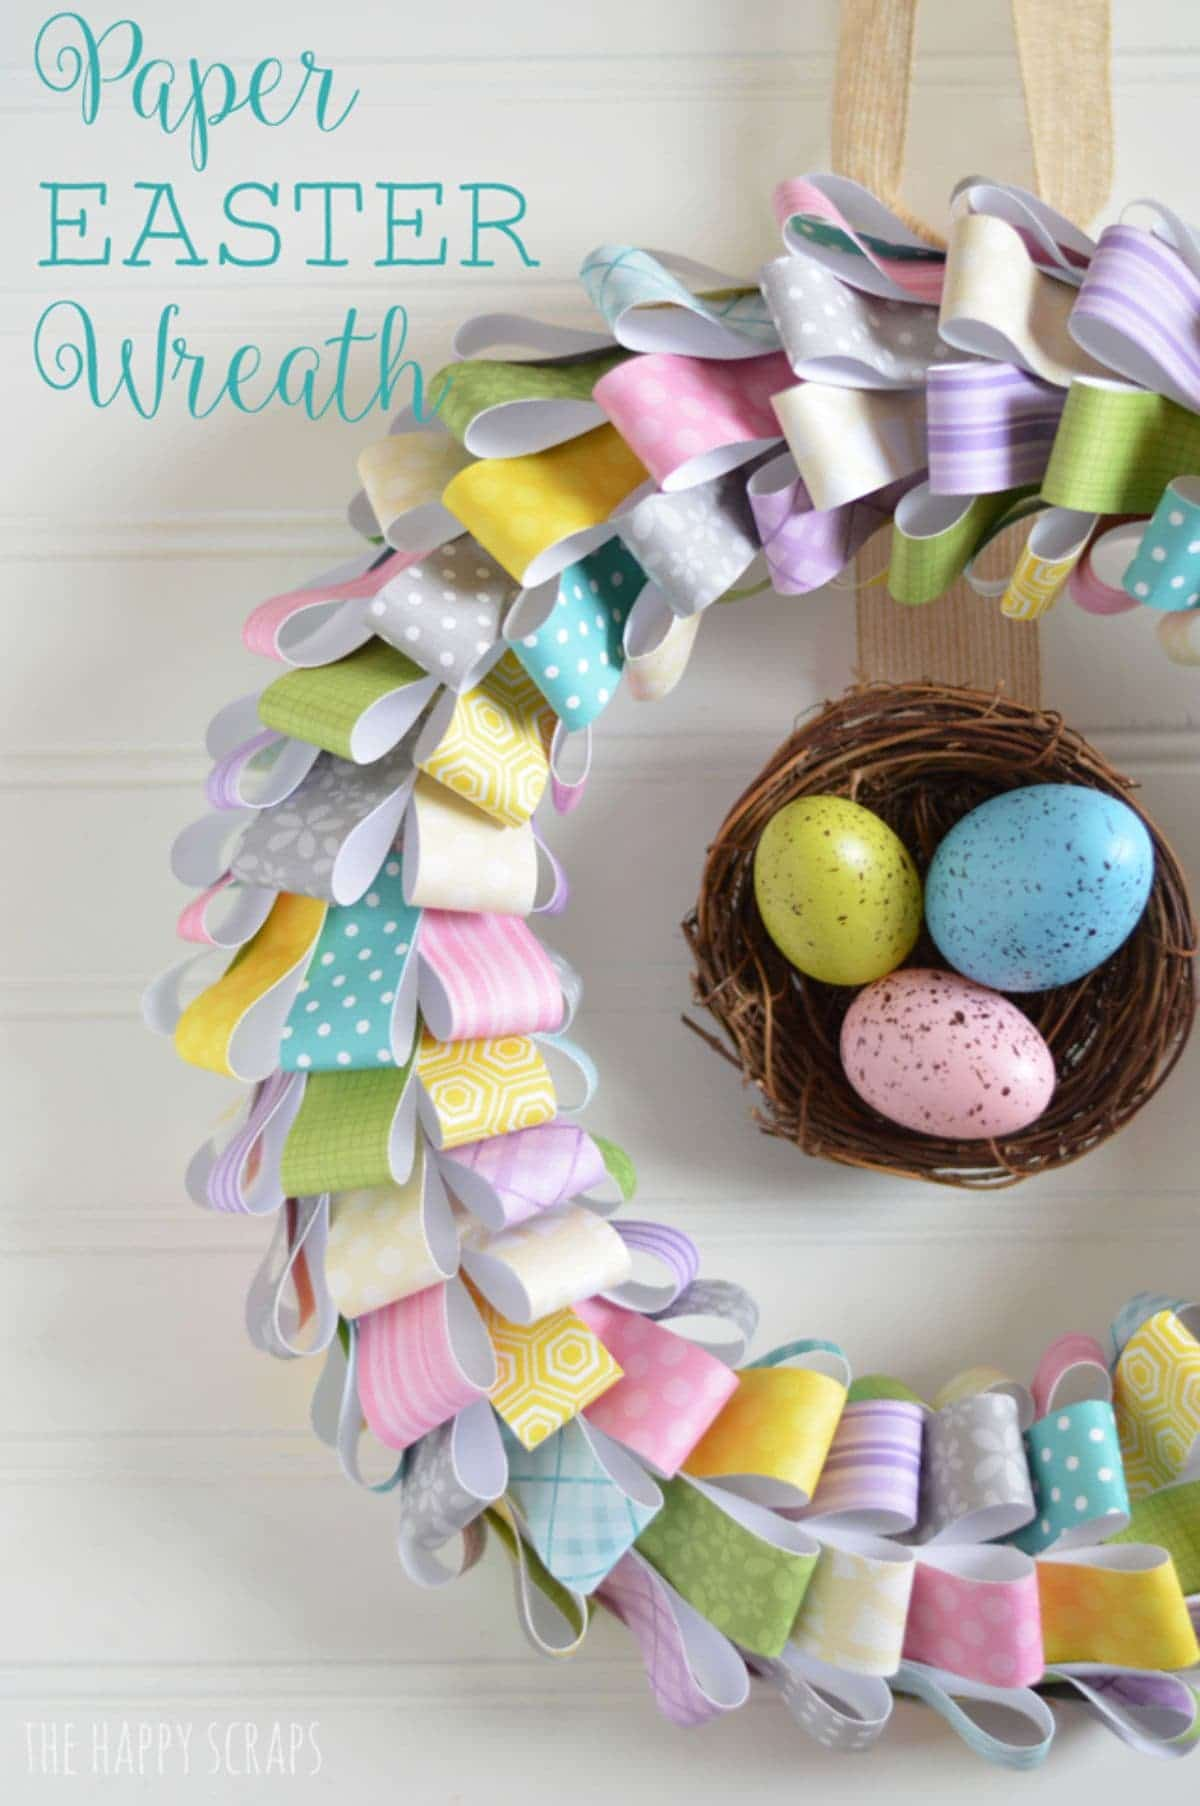 on a white background a wreath made of folded colored paper surrounds a twig basket with chocolate eggs inside